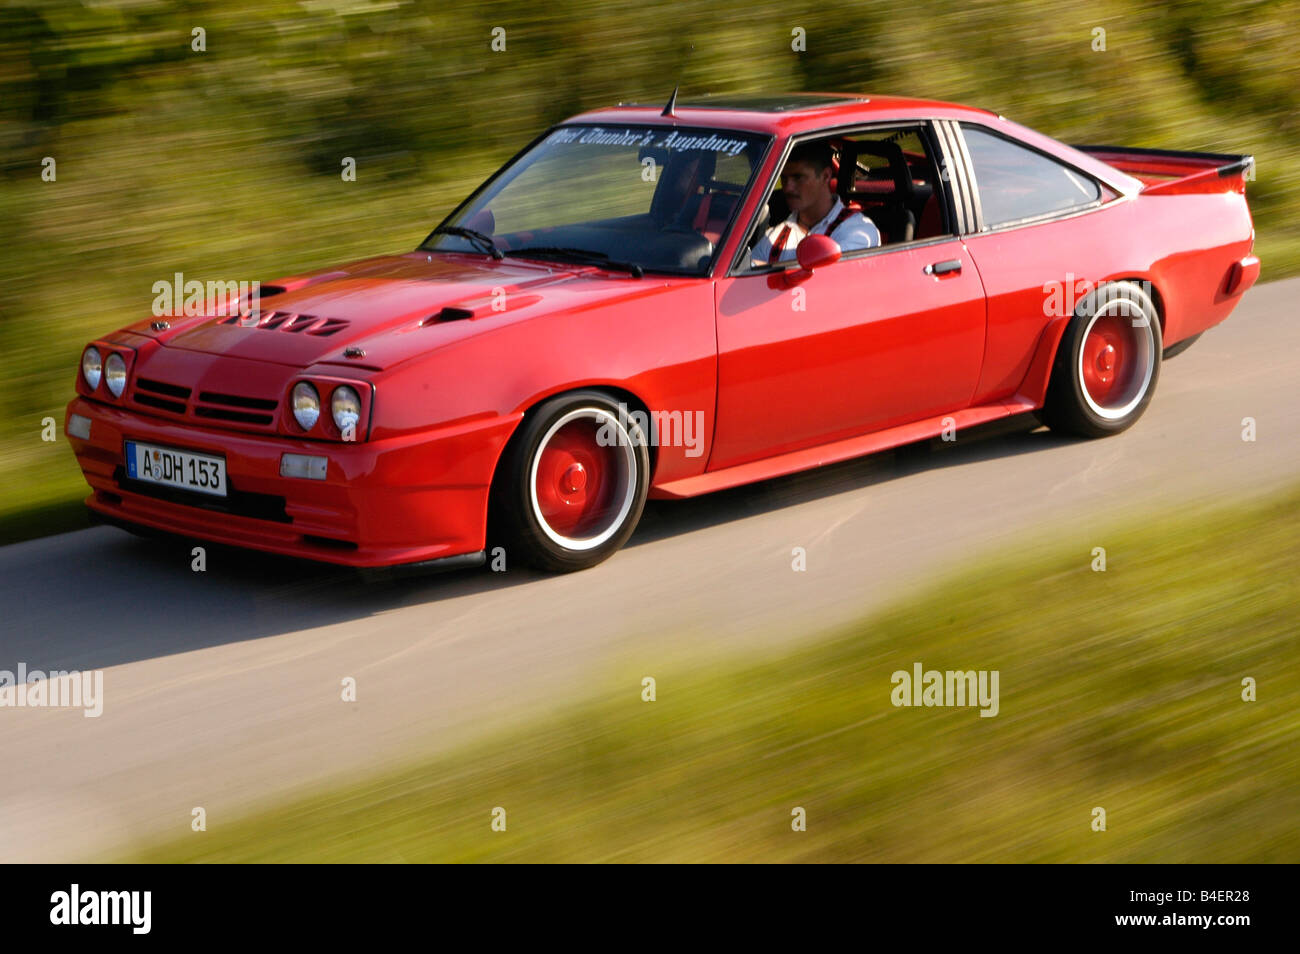 car opel manta b model year 1983 red coup coupe old car stock photo 19994416 alamy. Black Bedroom Furniture Sets. Home Design Ideas